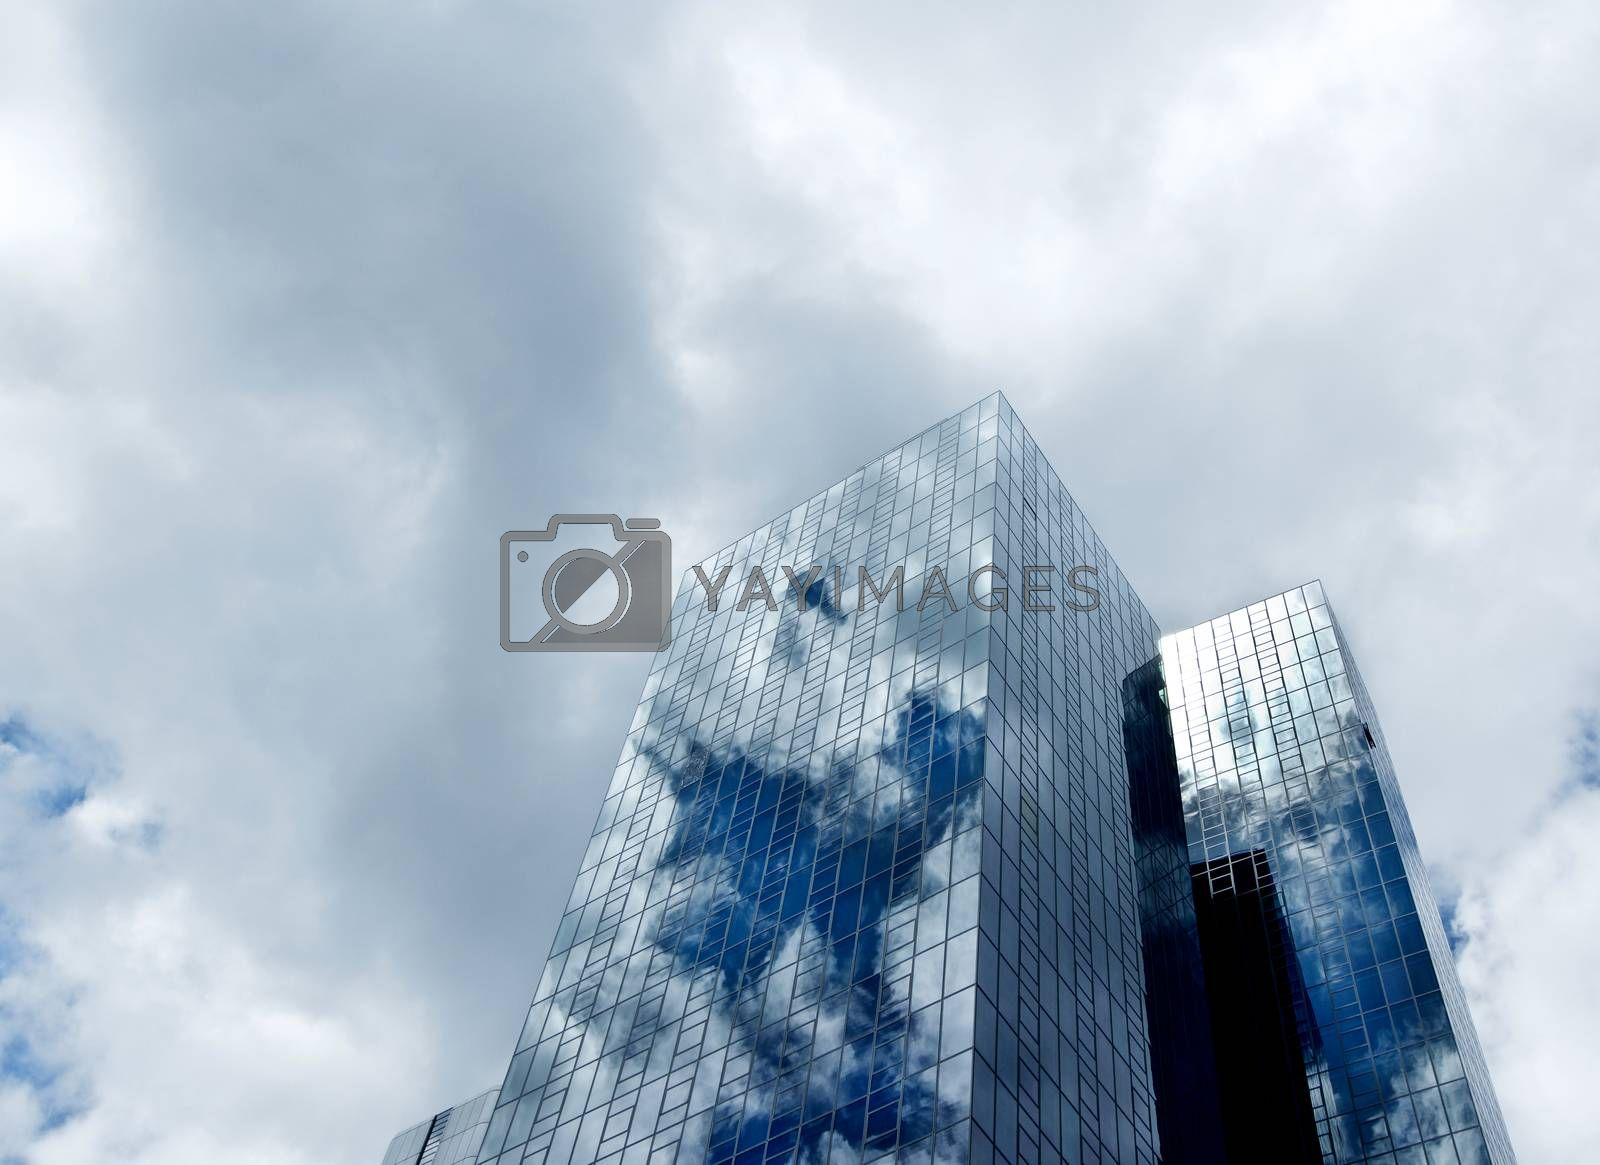 Modern Office Buildings with Mirror Facade and Sky Reflection against Clouds Outdoors. Bottom Up View